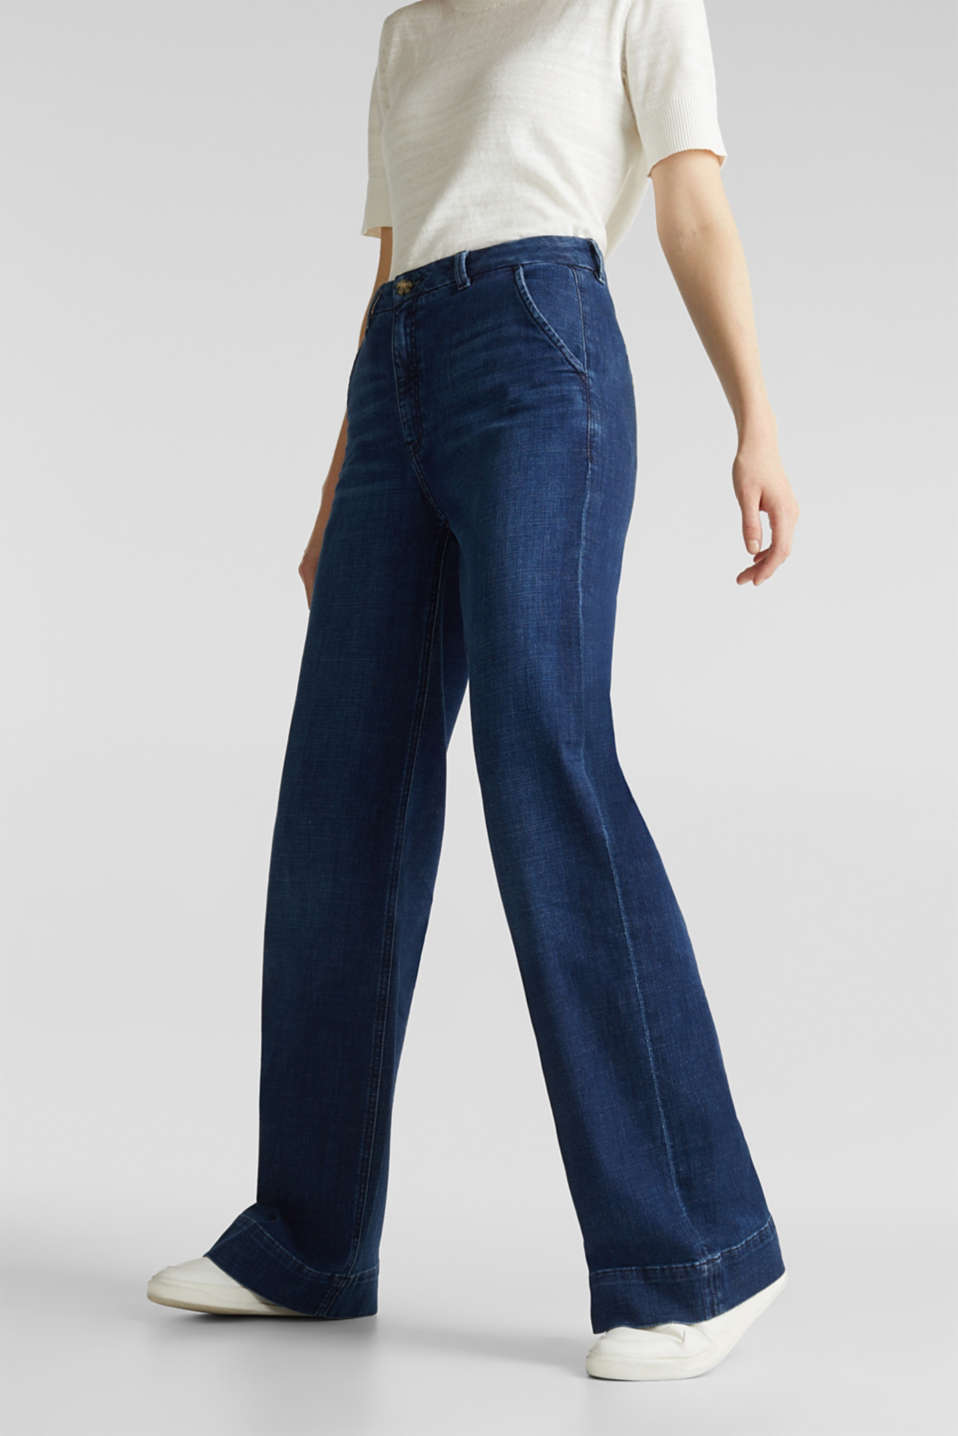 Esprit - Fashion jeans made of soft denim